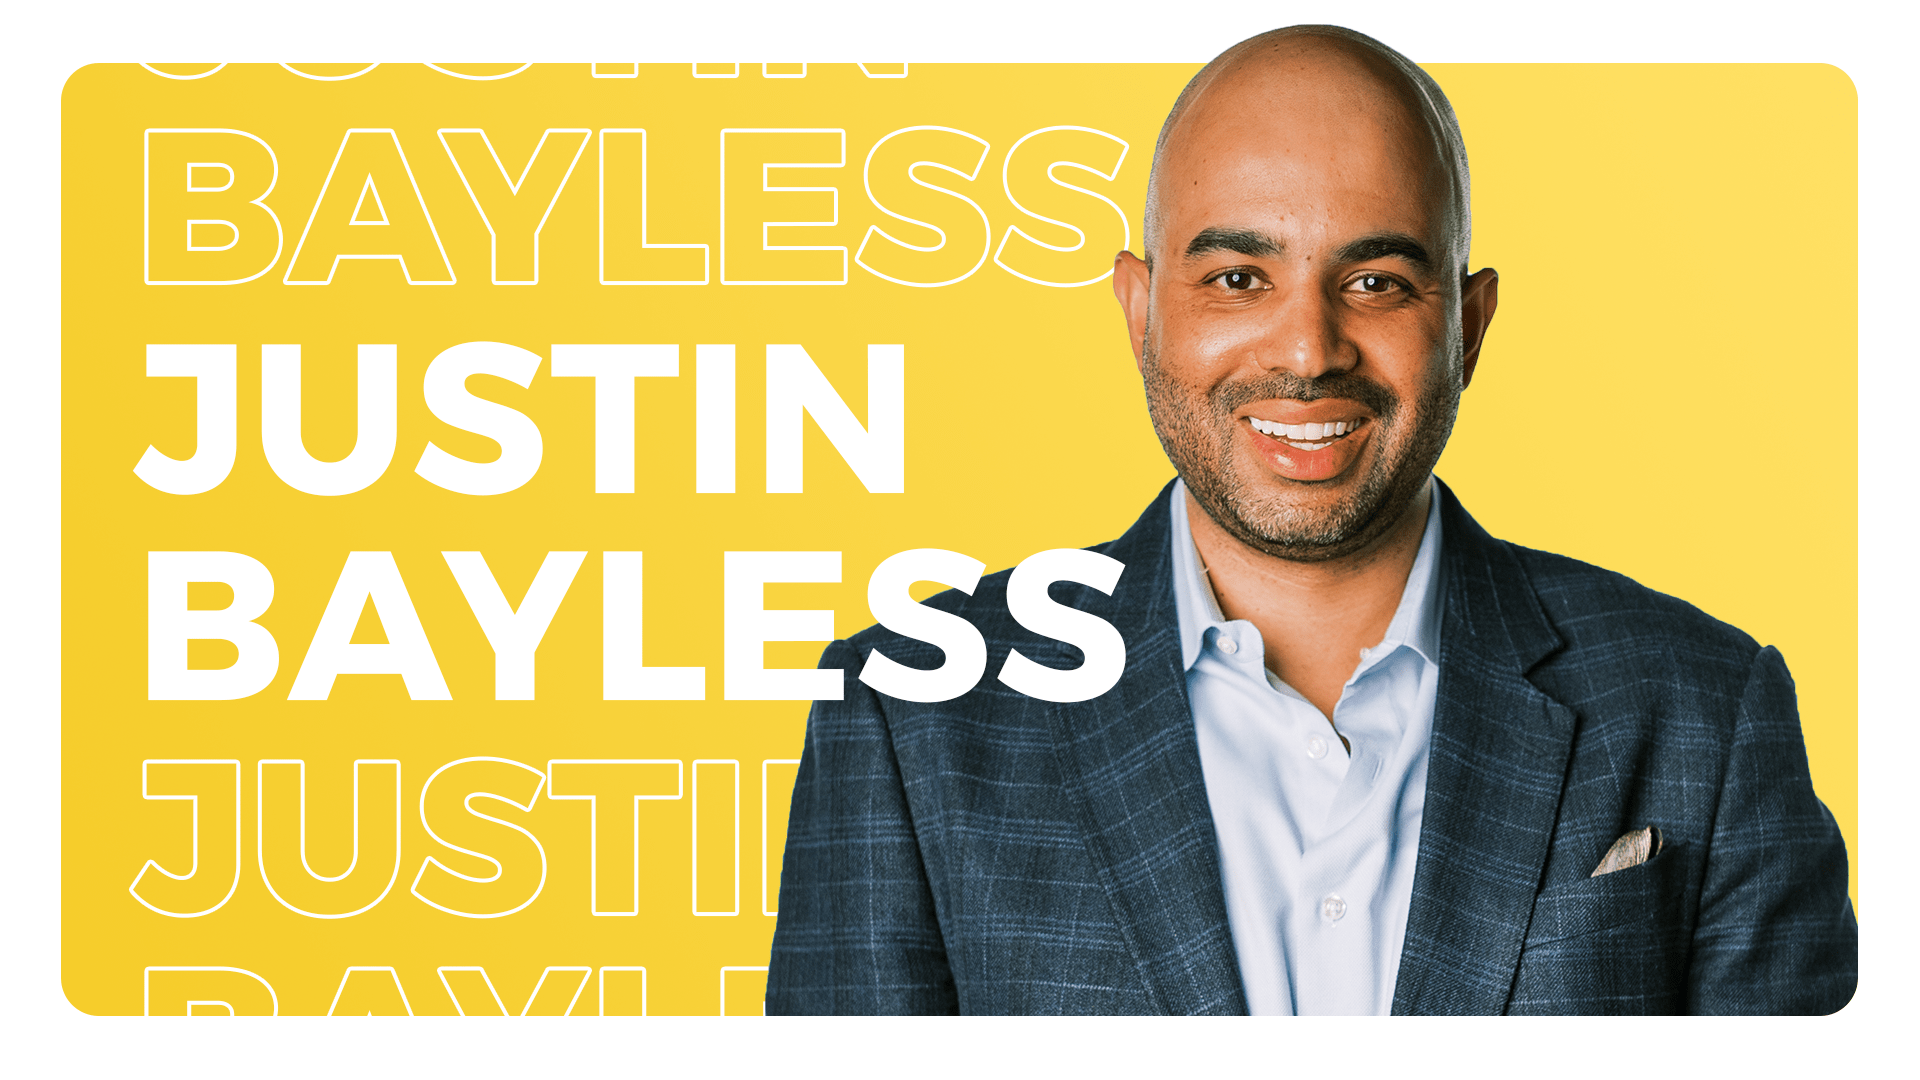 Justin Bayless, CEO of Bayless Integrated Healthcare talks leadership